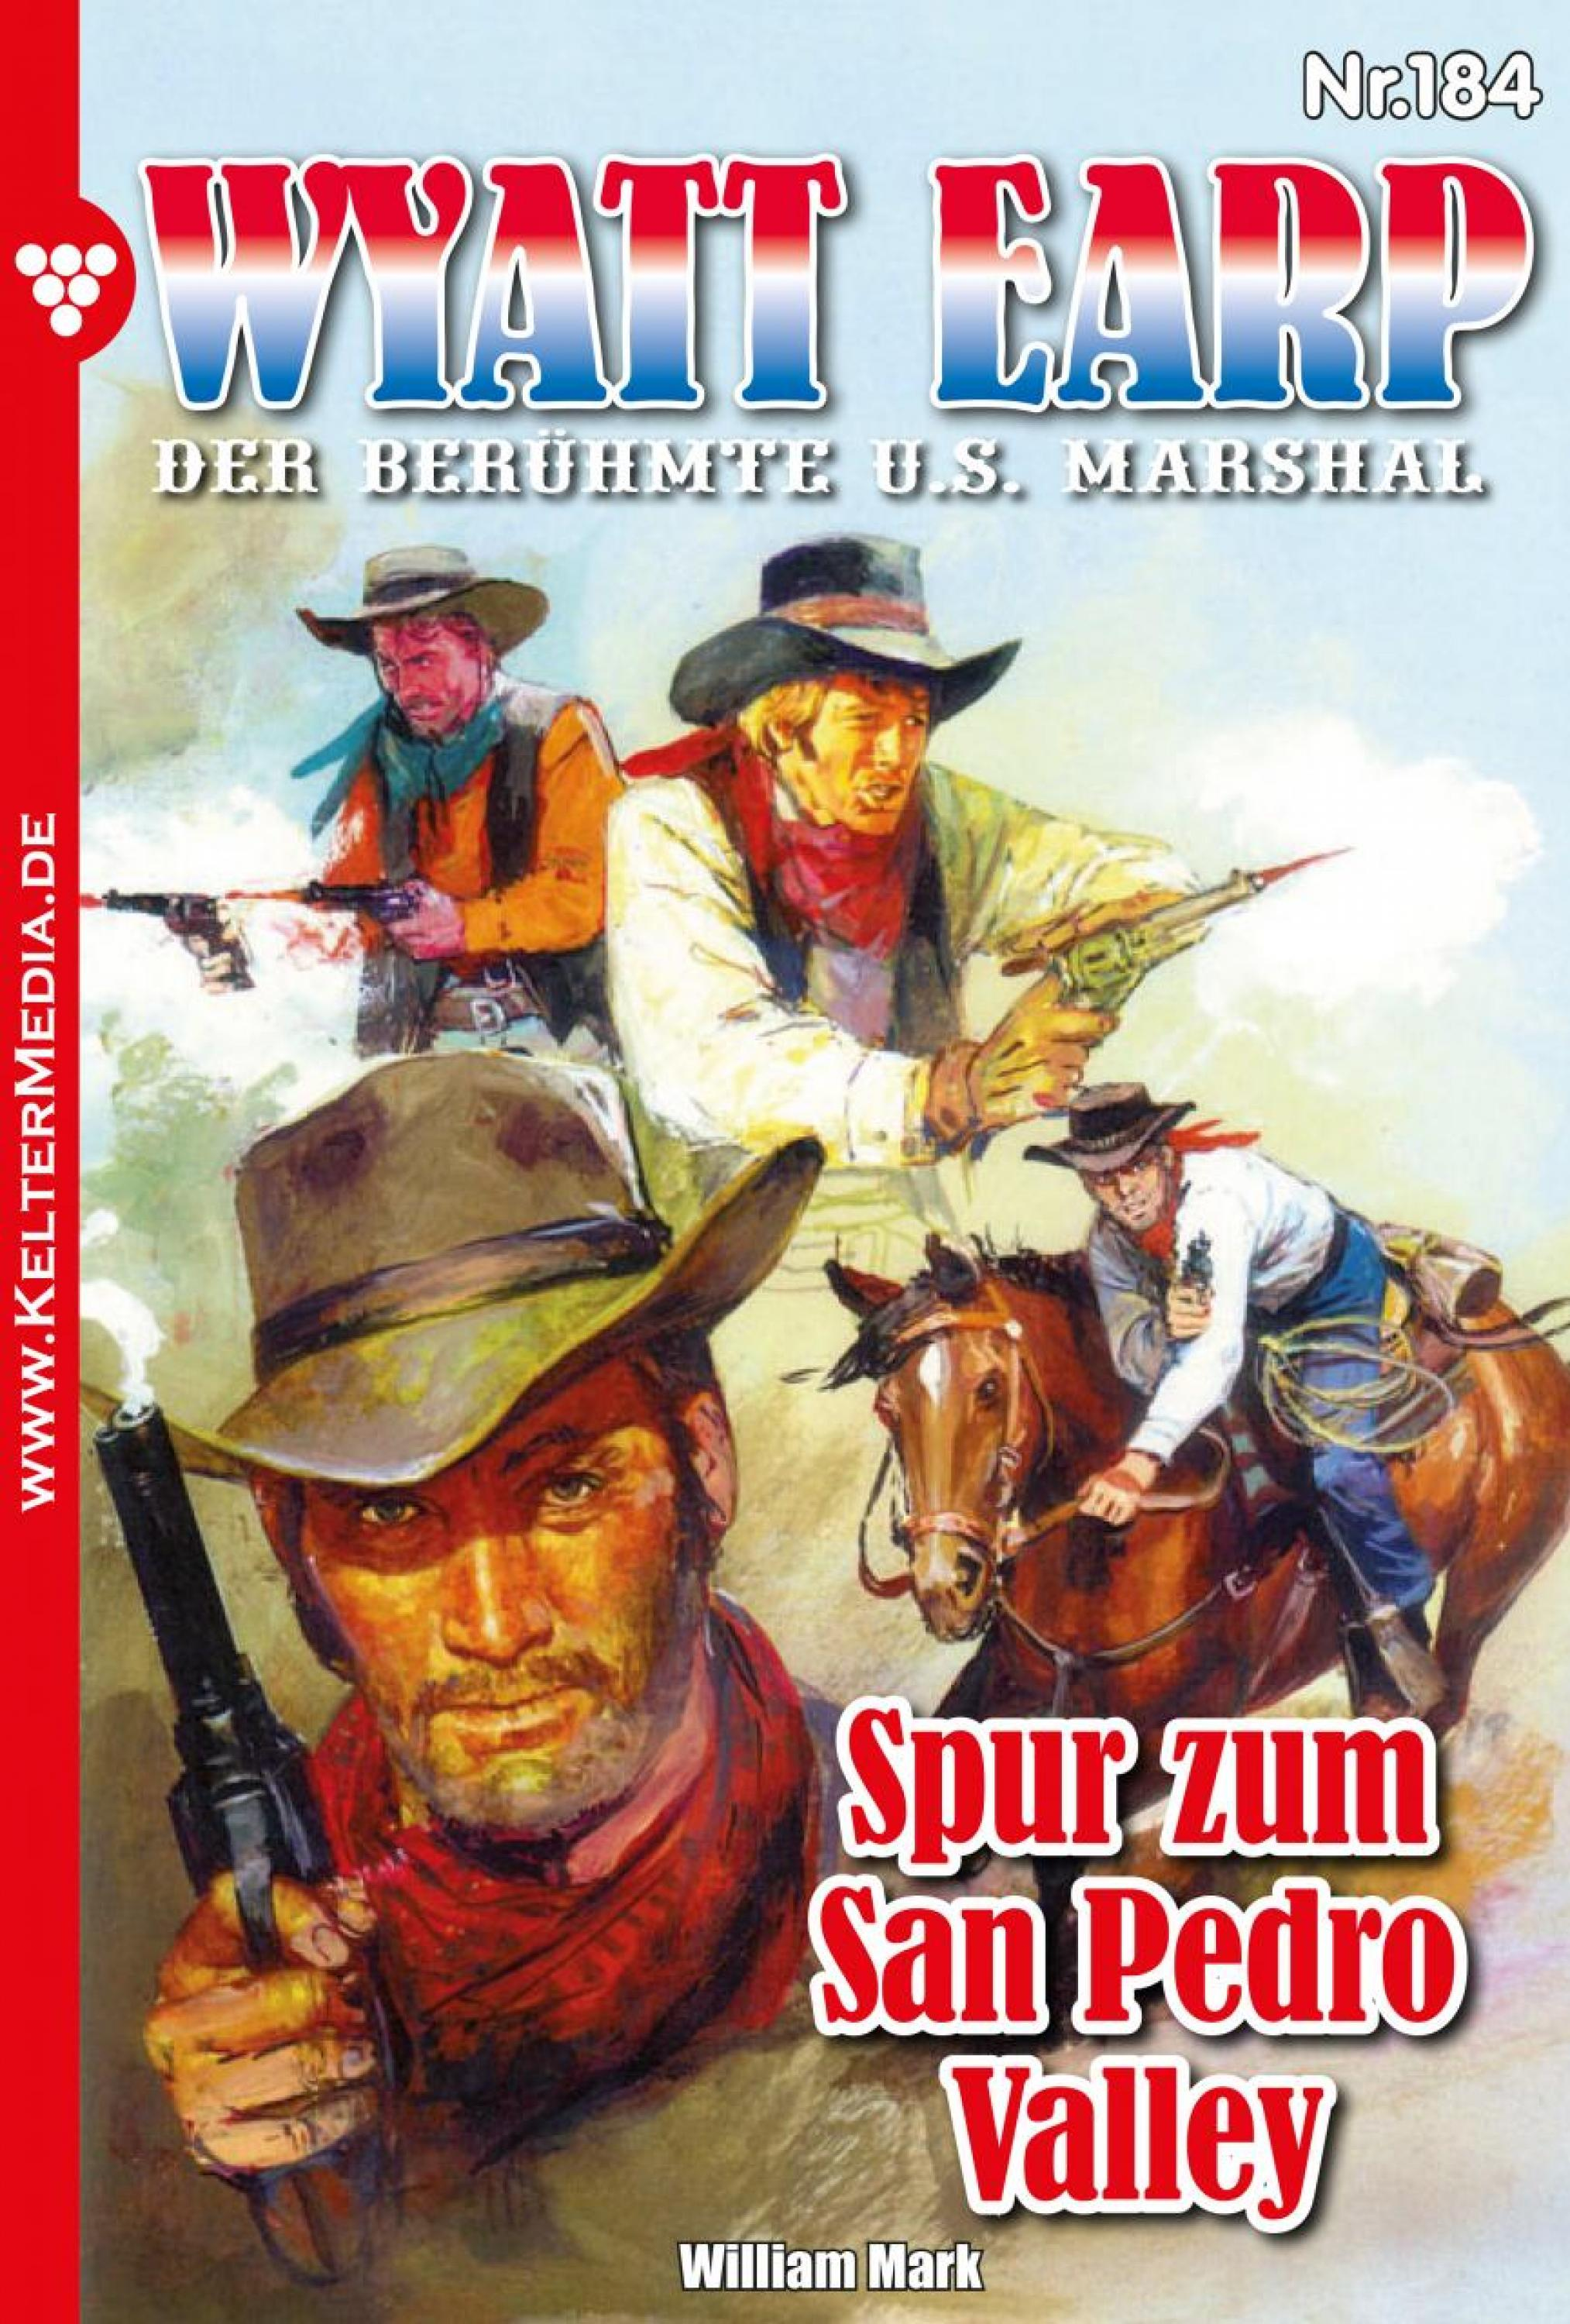 цены William Mark D. Wyatt Earp 184 – Western